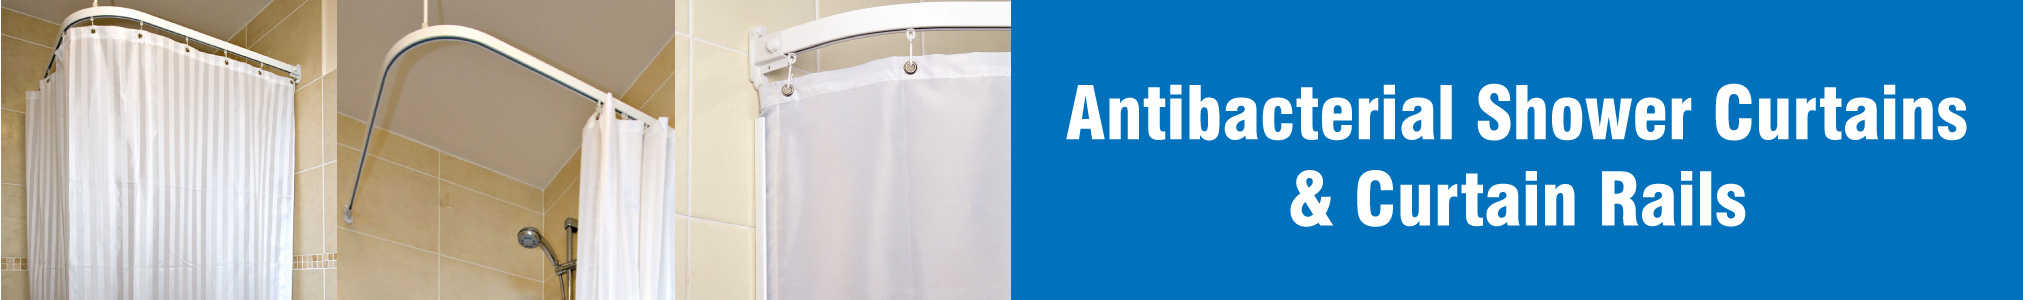 Antibacterial Shower Curtains &  Shower Curtain Rails banner image